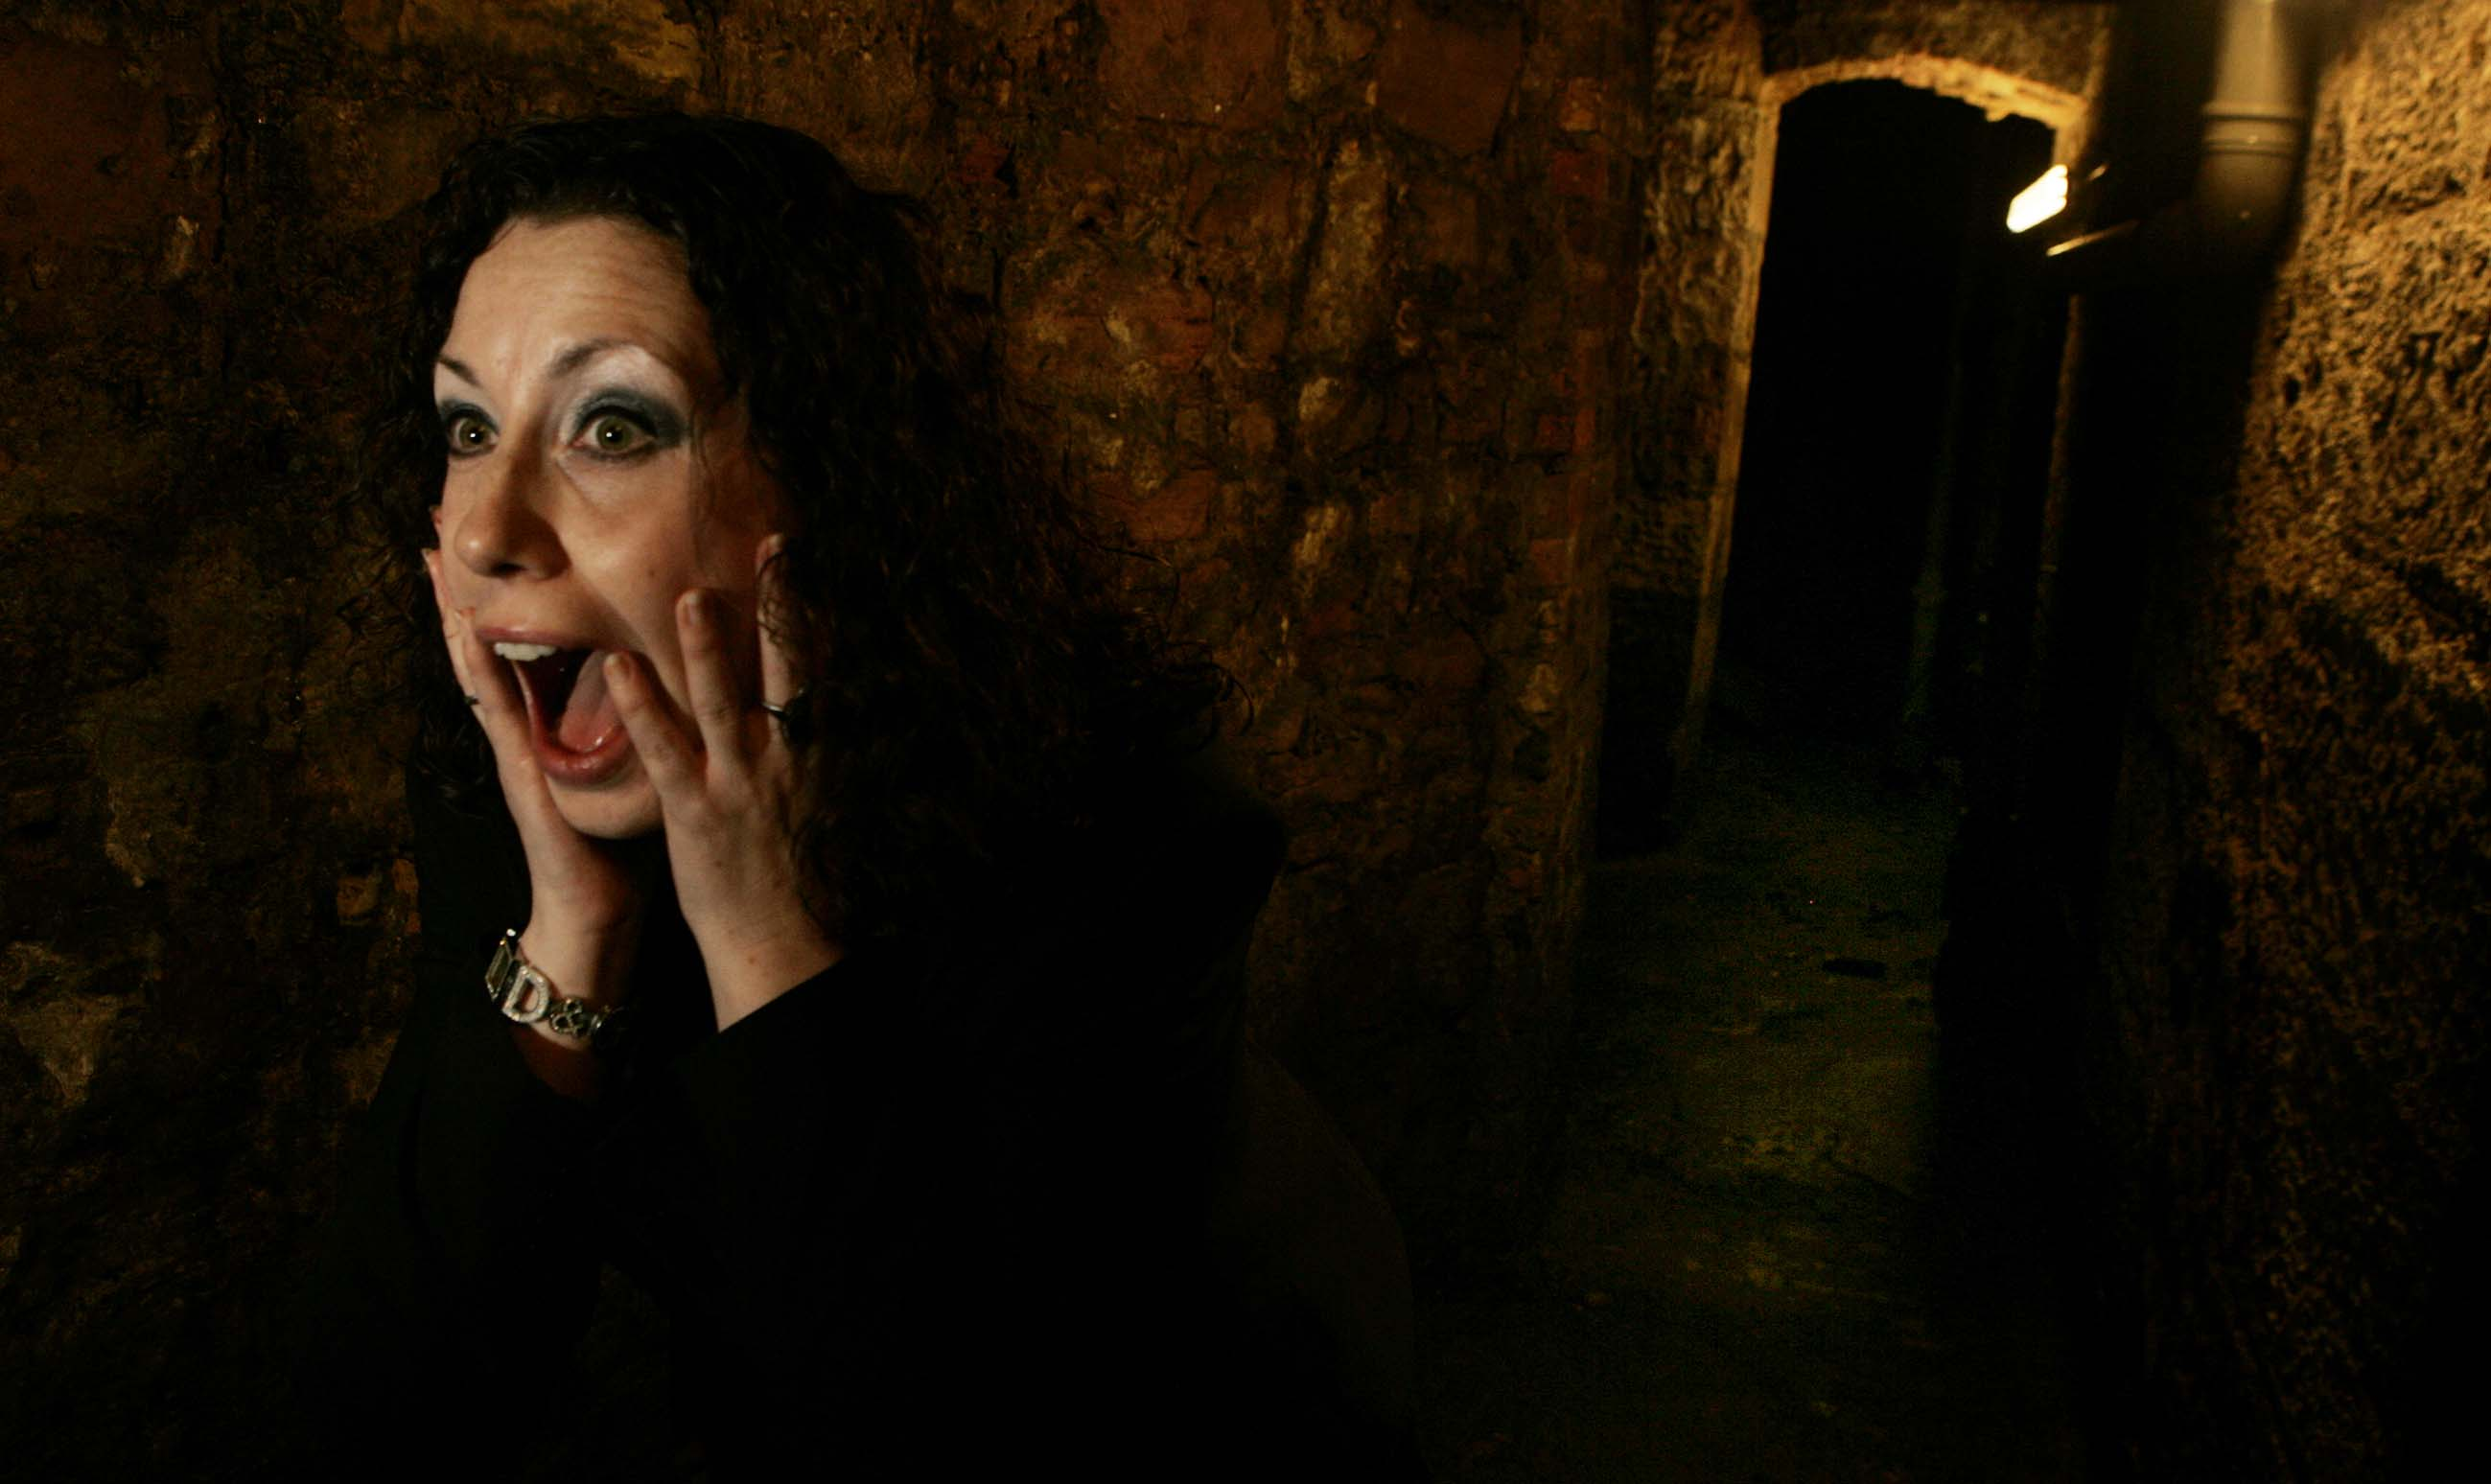 Hotel PR photography for Fraser Suites where staff have reported spooks in the cellar